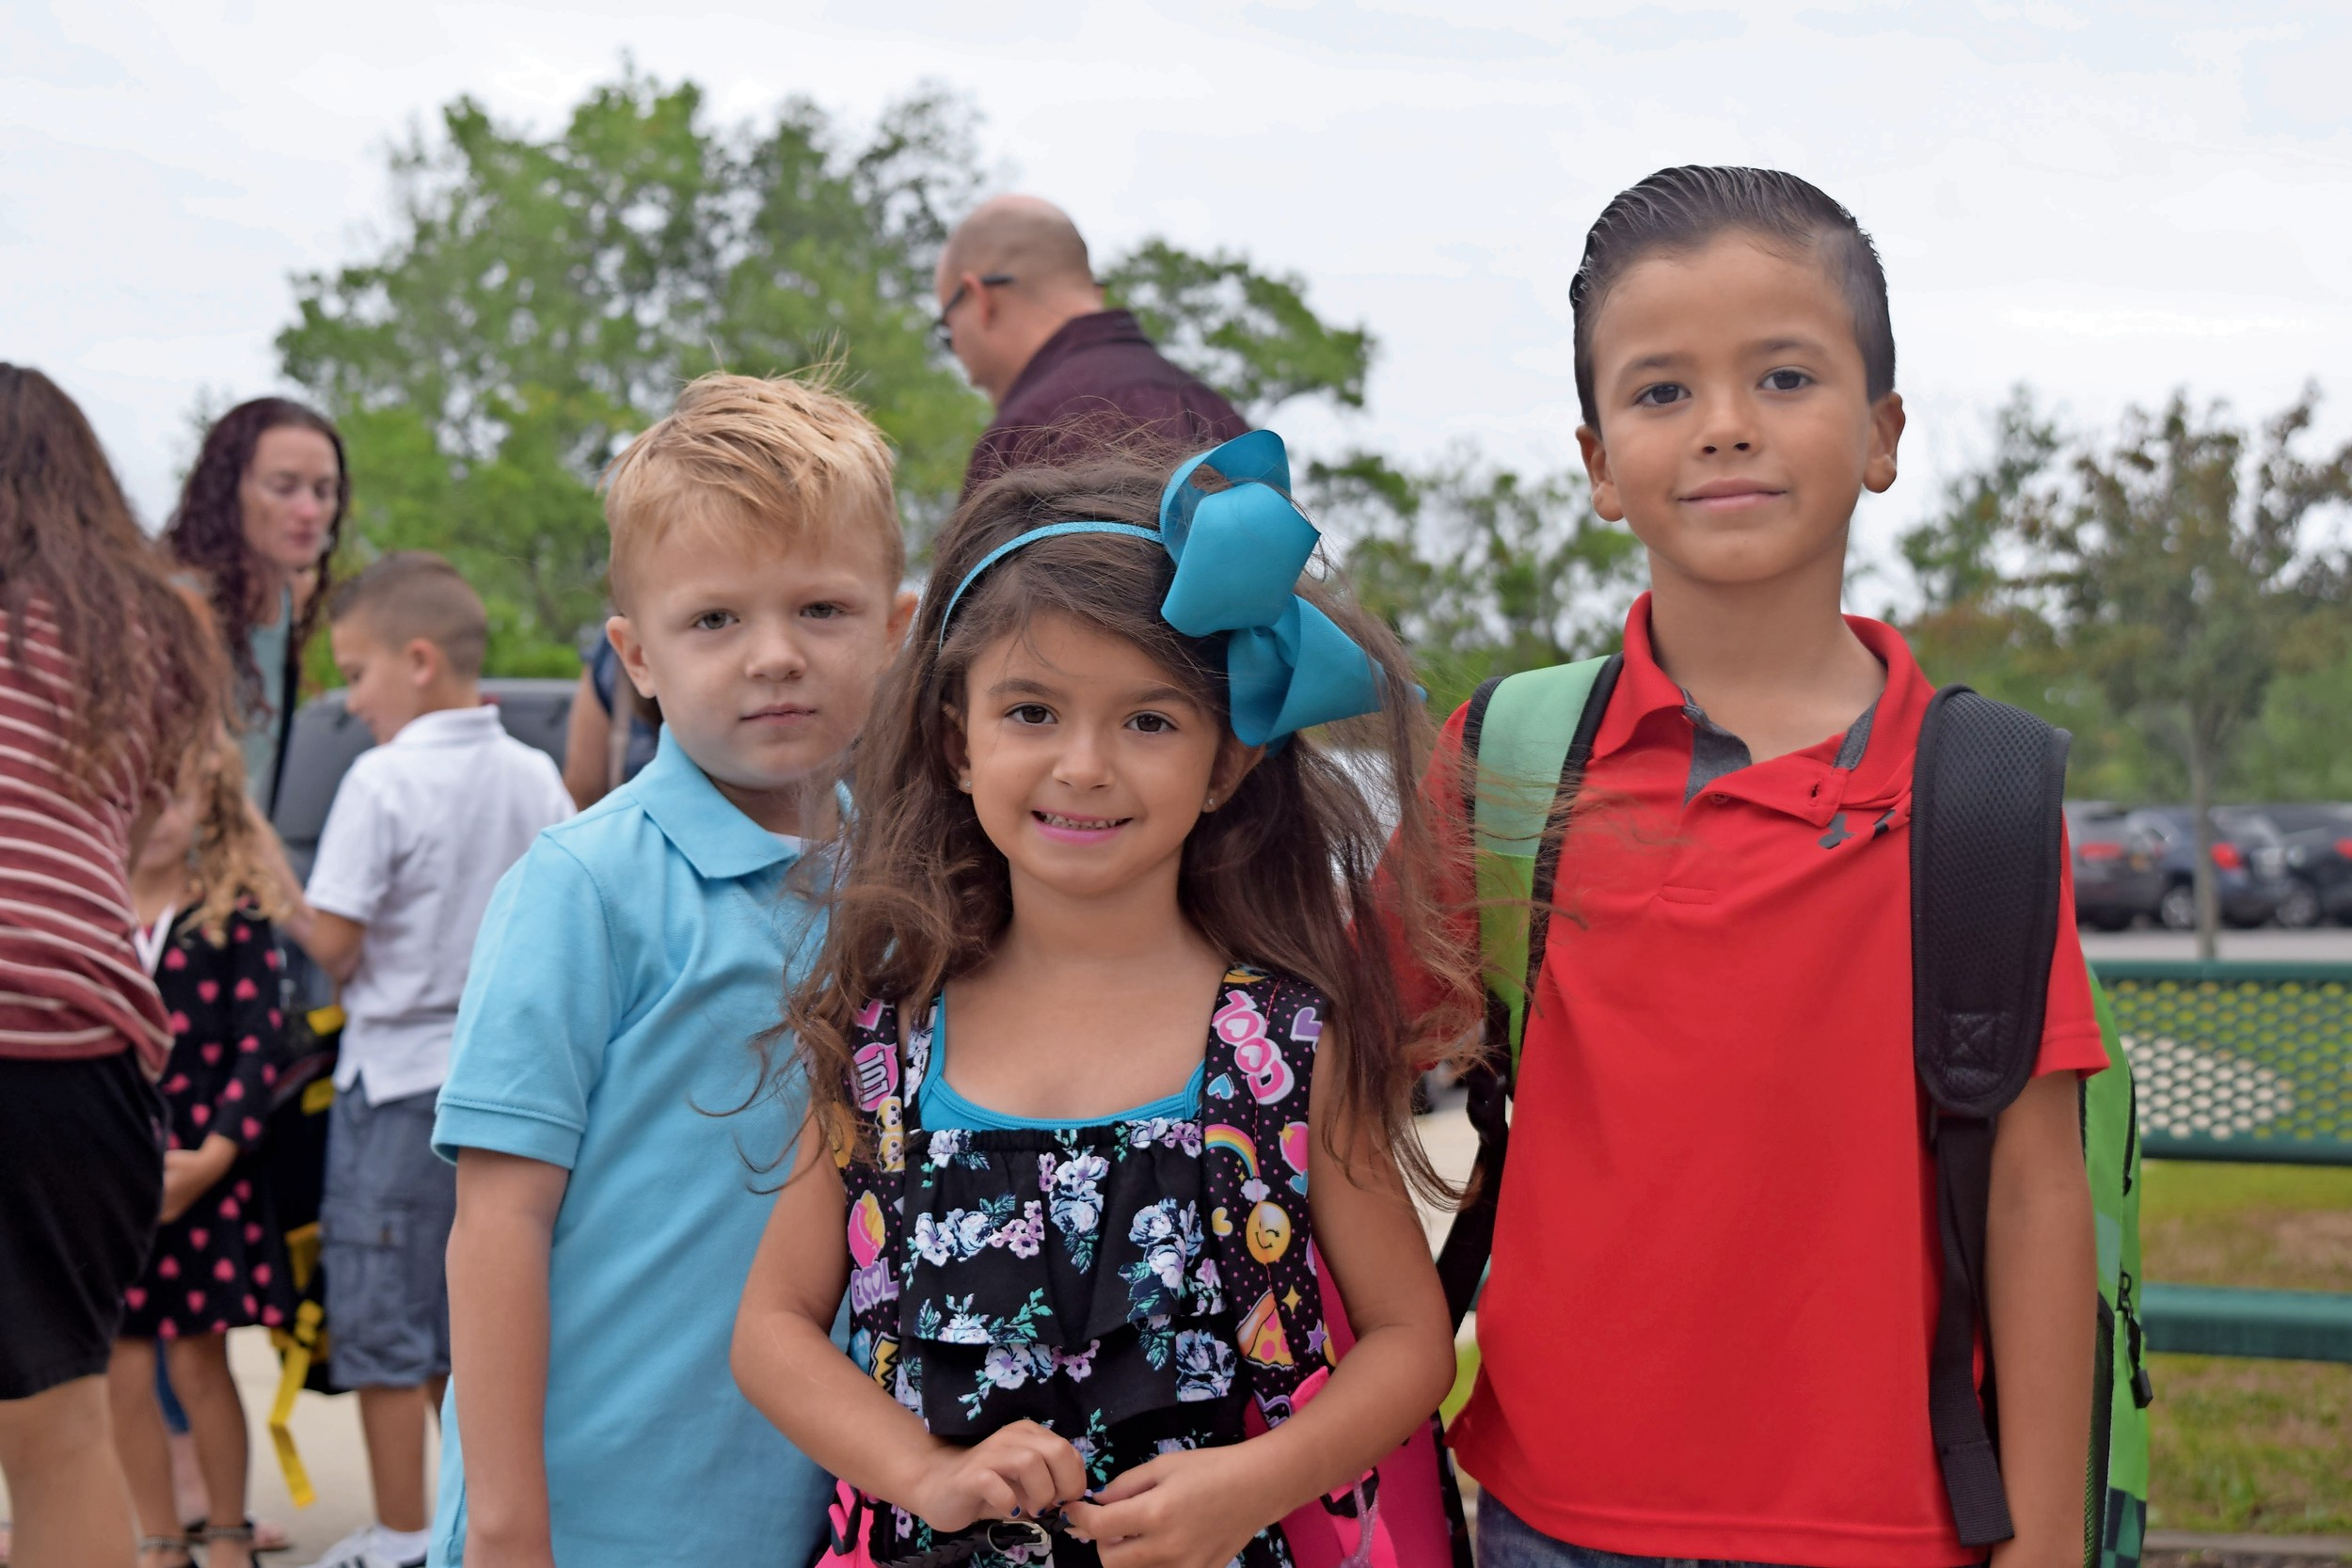 Lucas Meisenholder, 6, far left, Alessandra Saurman, 7, and Joe Vincent, 7, started a new school year at Seaford Harbor Elementary School this week. They are pictured on the first day of classes last year.